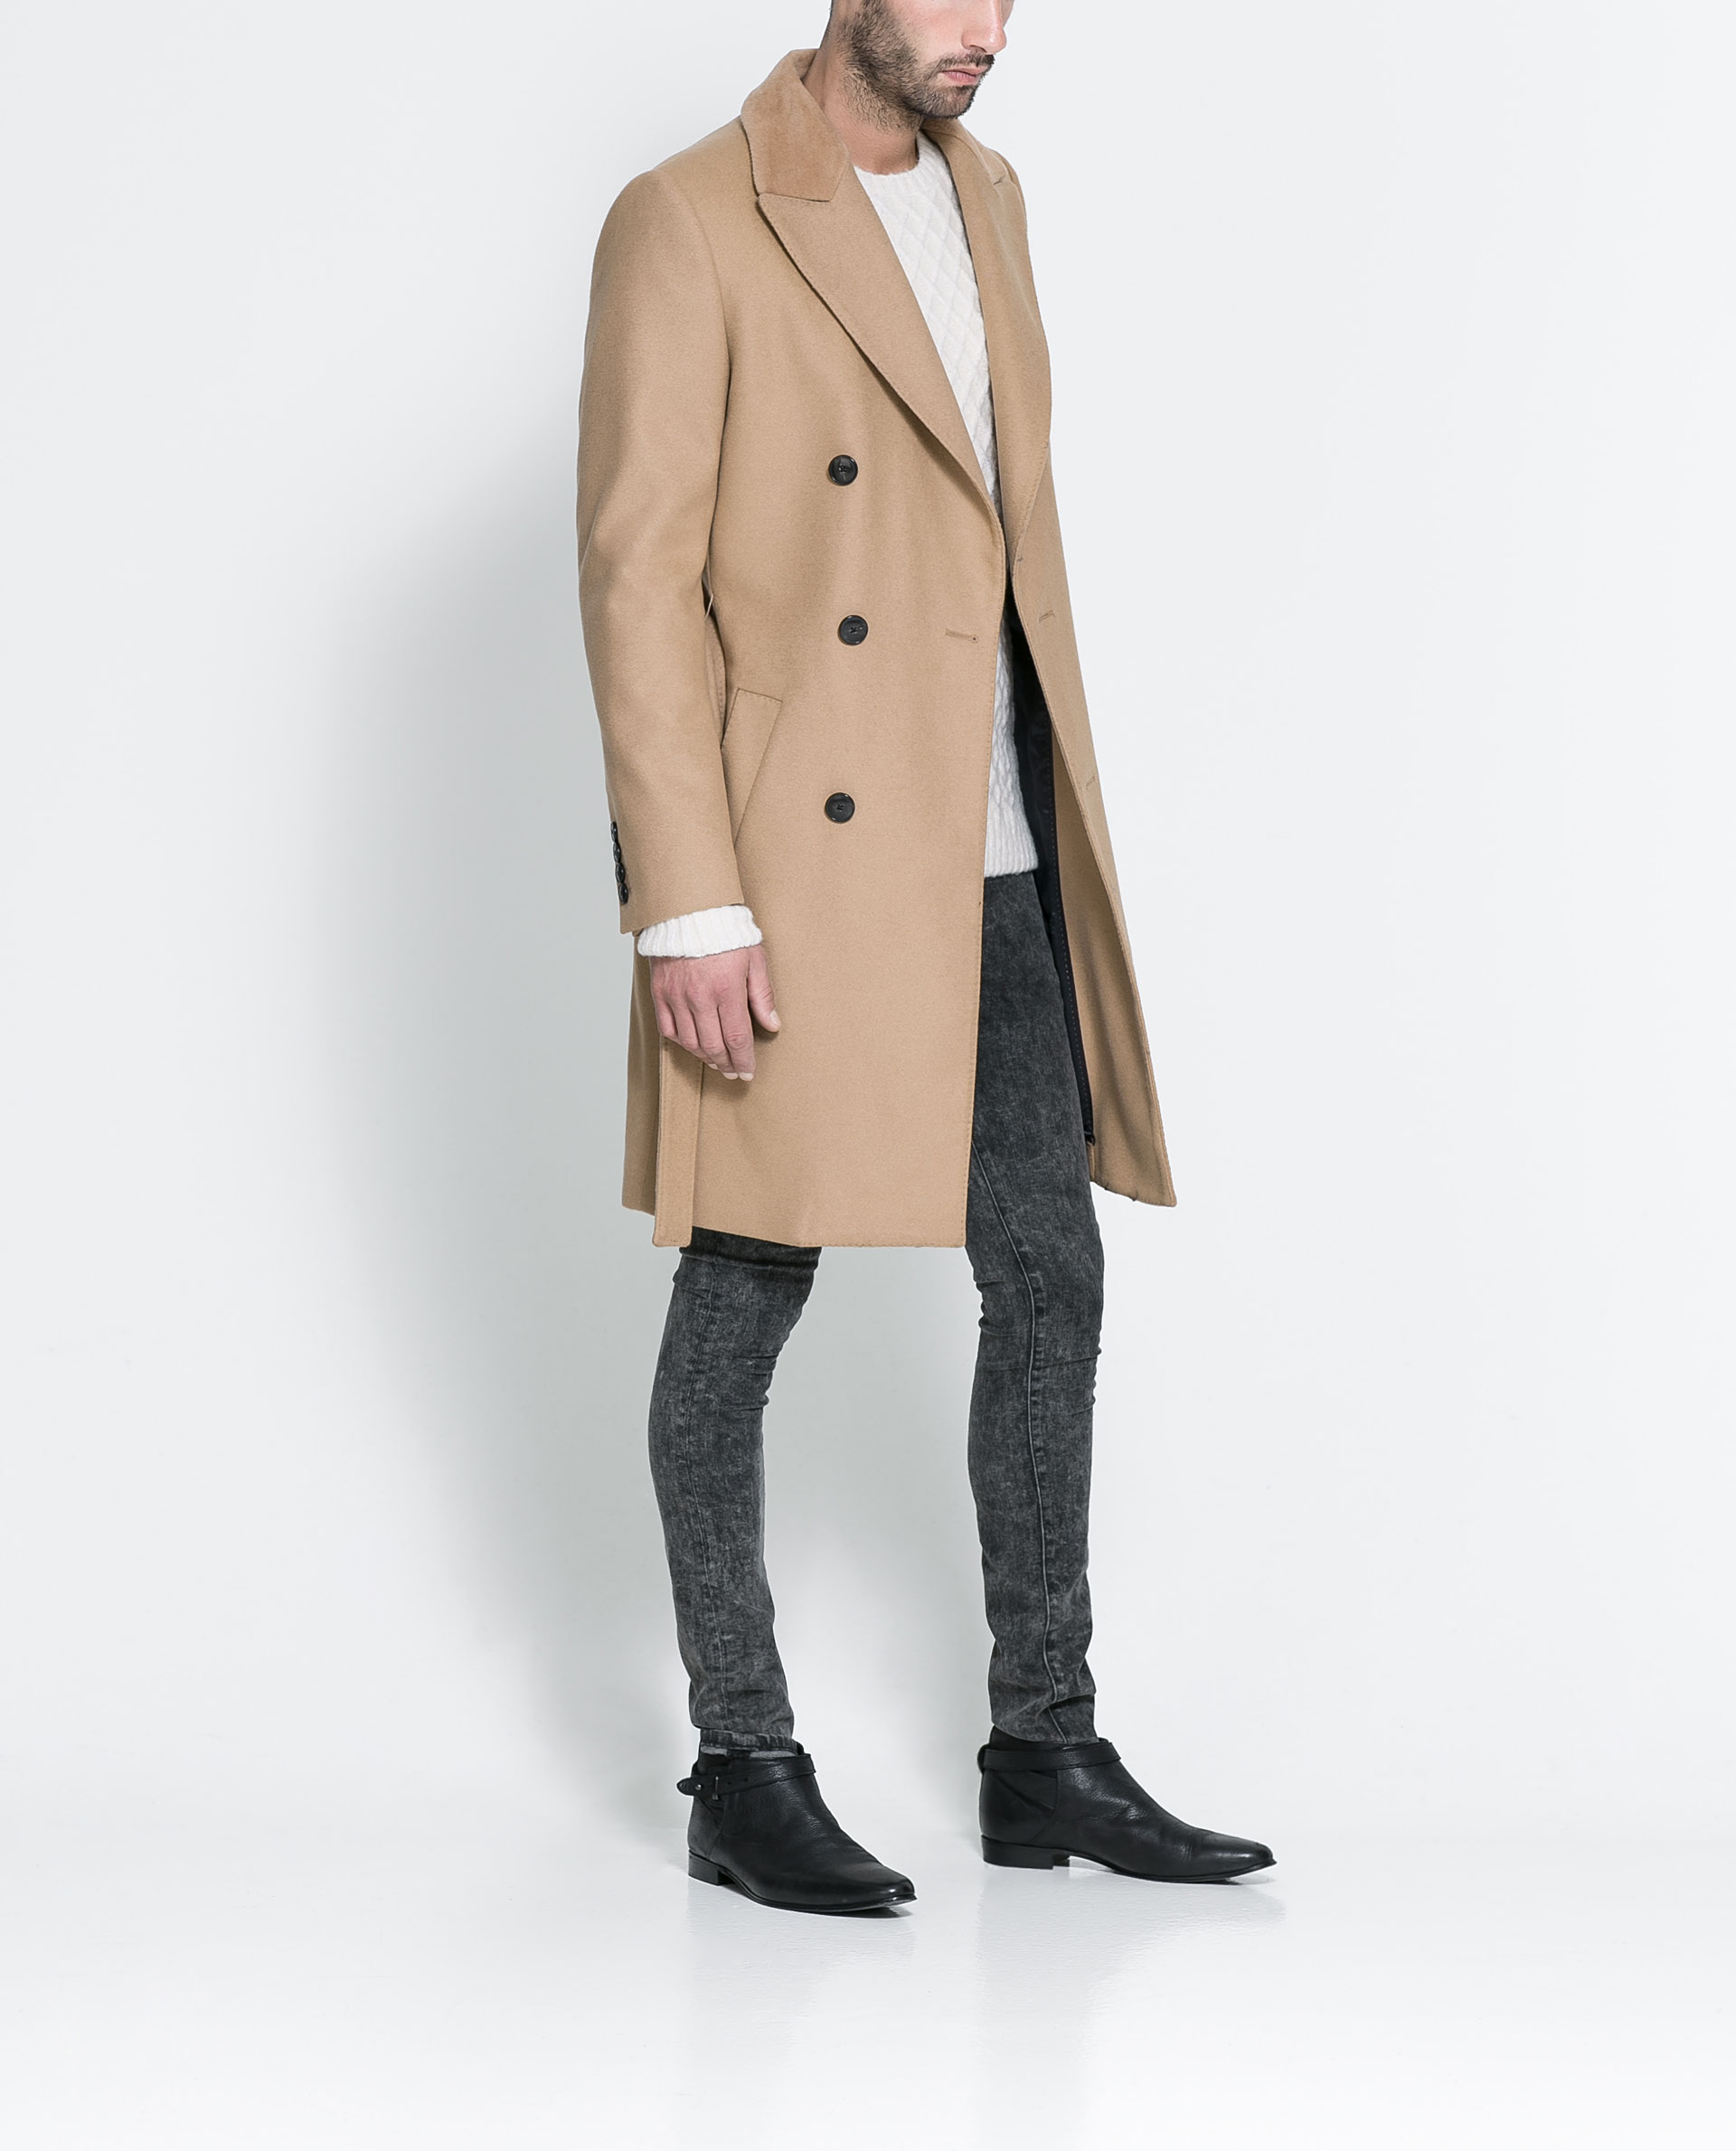 Mens jacket camel - 6 Men S Trench Coats To Consider This Autumn Fashionbeans